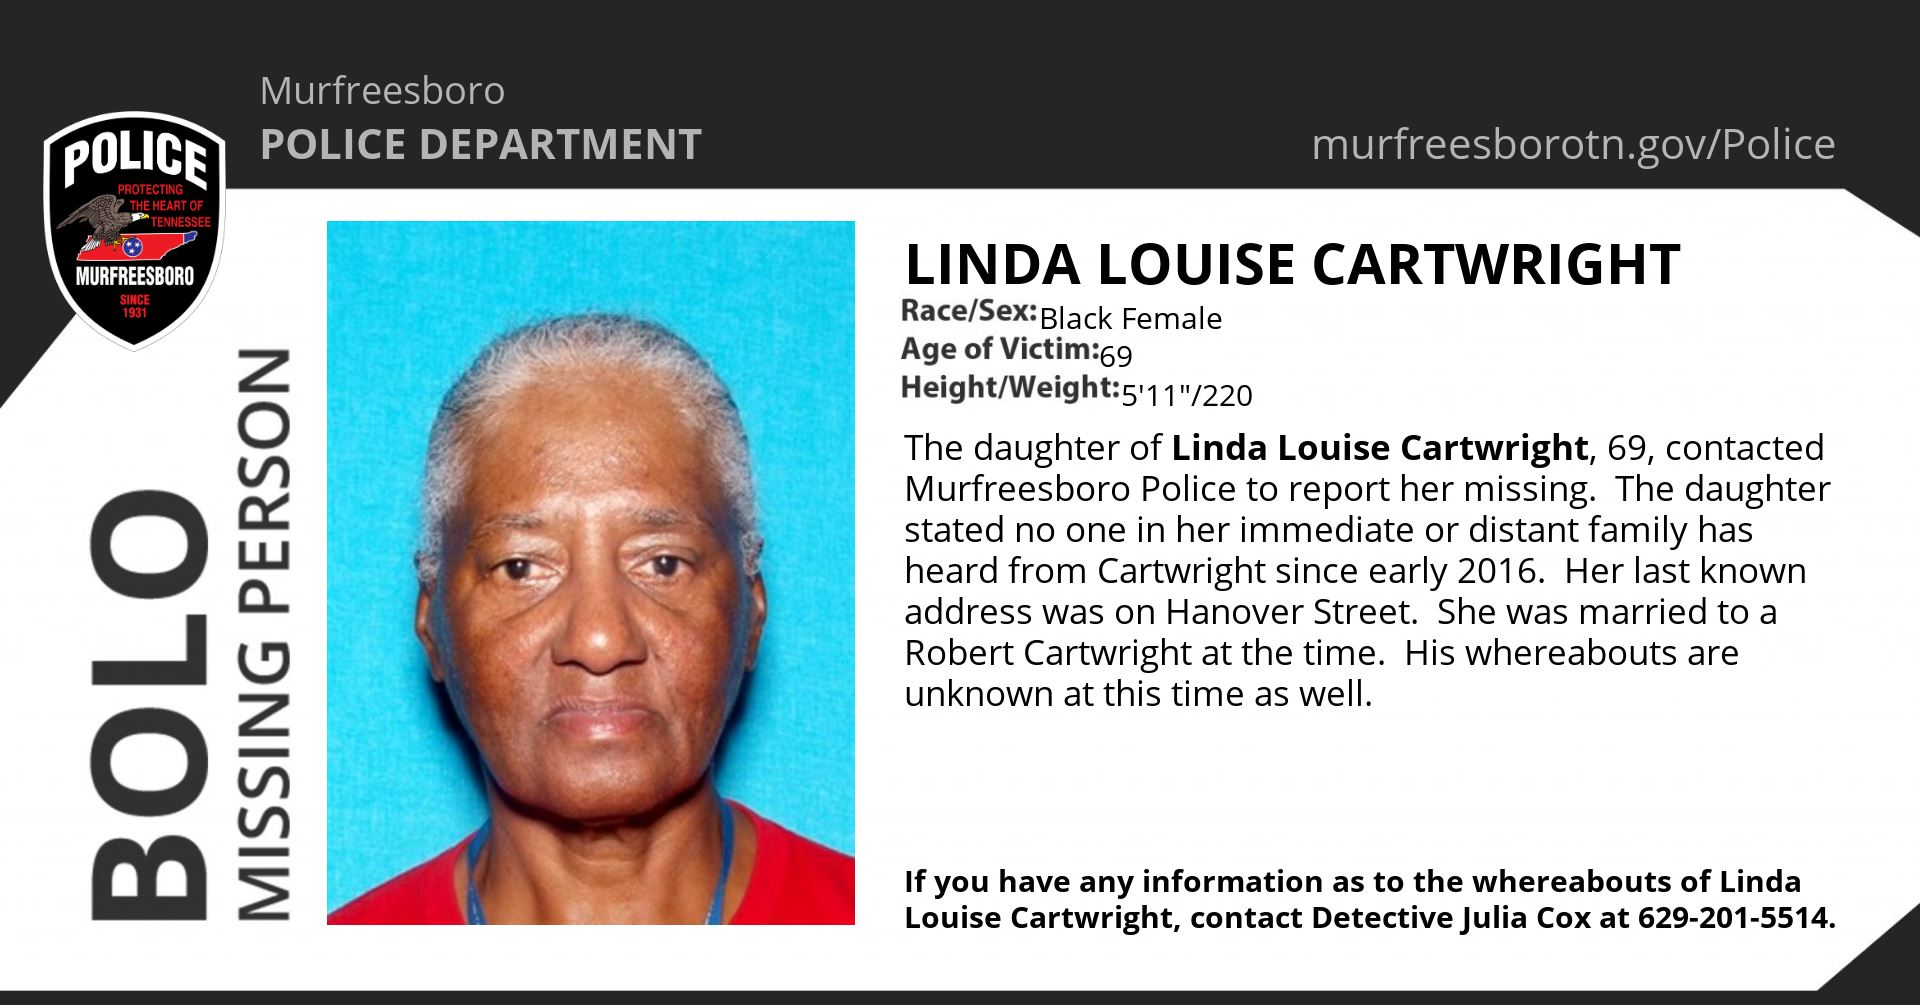 Missing Person Linda Louise Cartwright